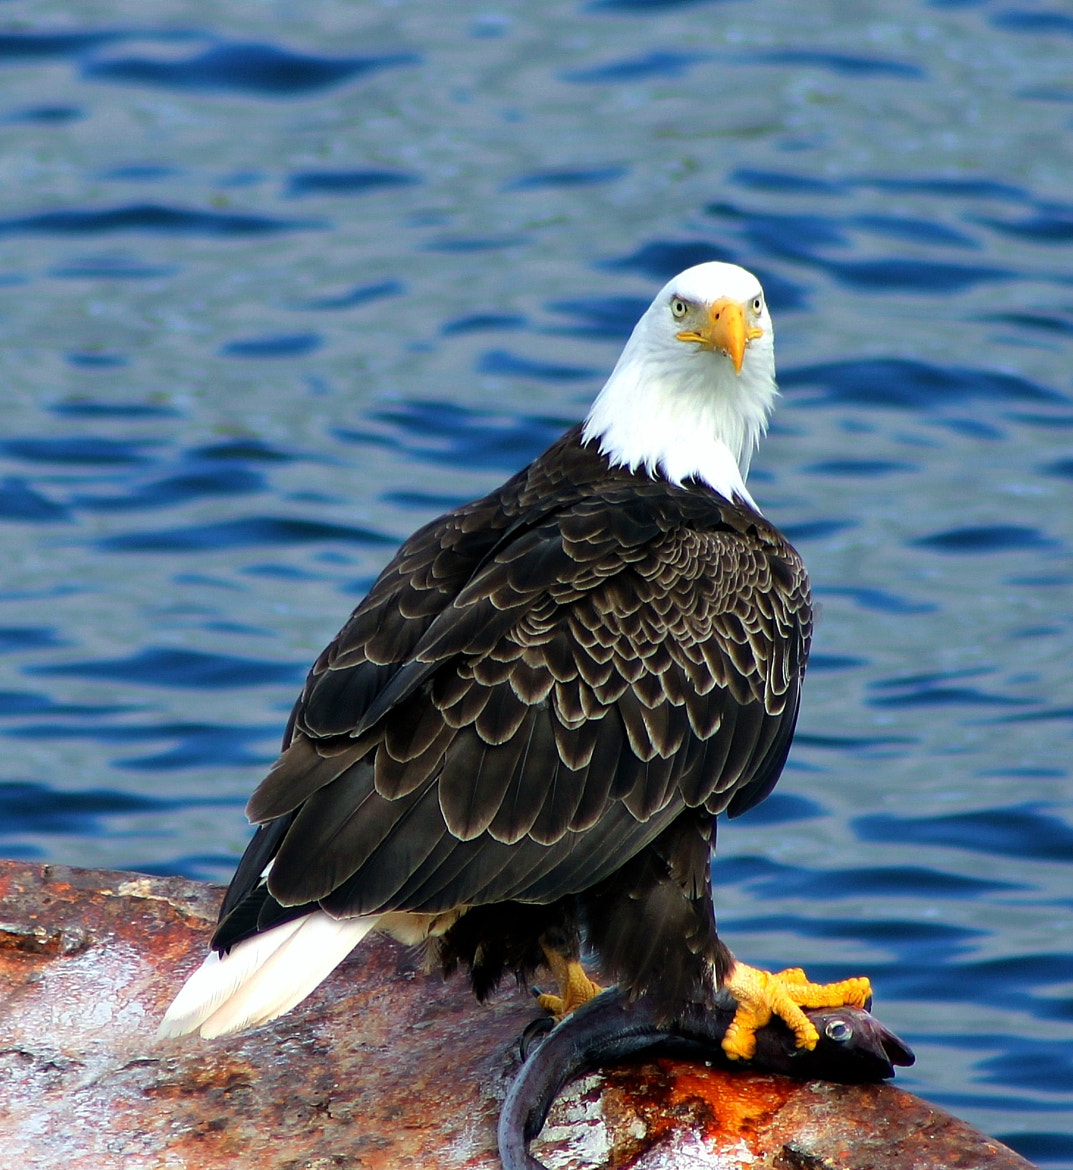 Photograph Bald Eagle and fish by Jack Molan on 500px